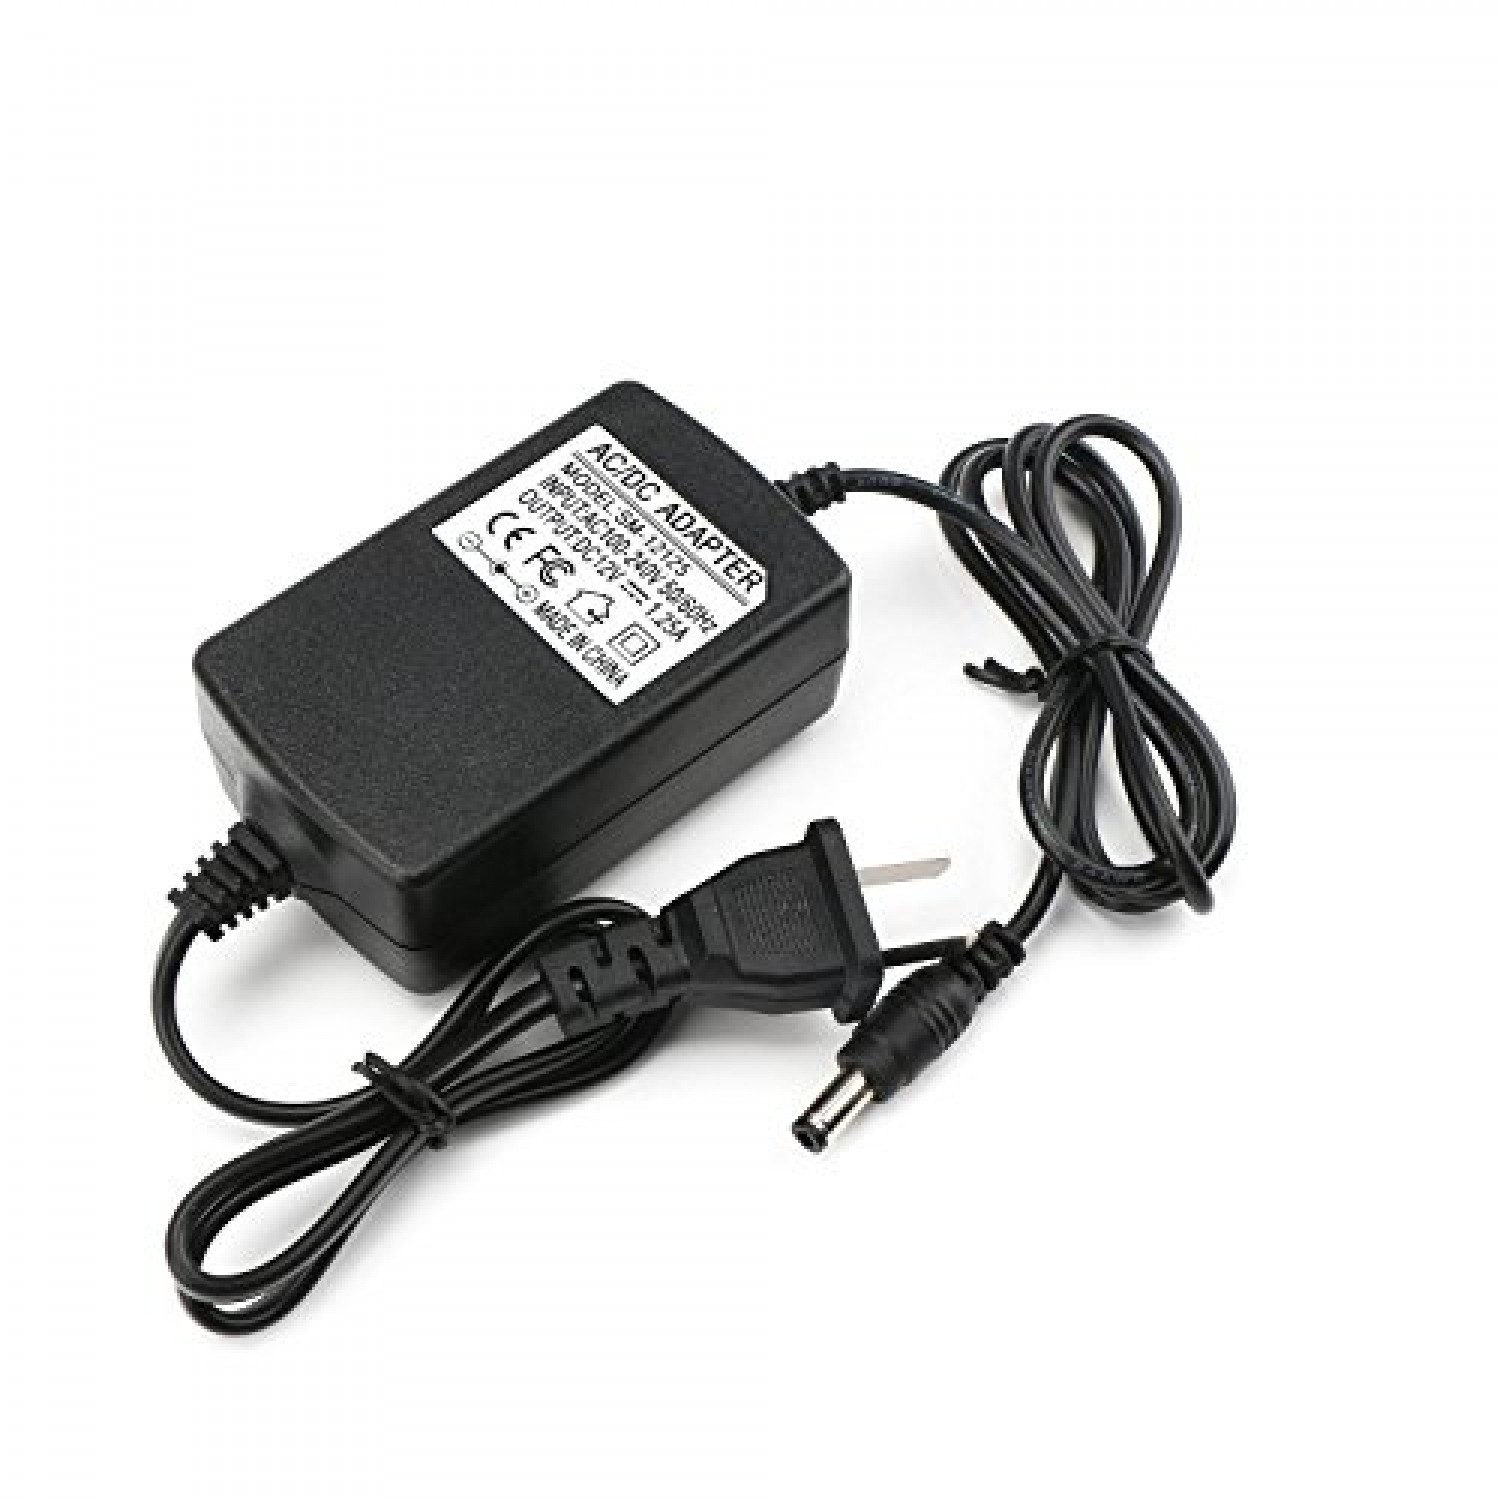 Universal Ac To Dc Power Socket Adapter Converter Output 12v 125 125a Input